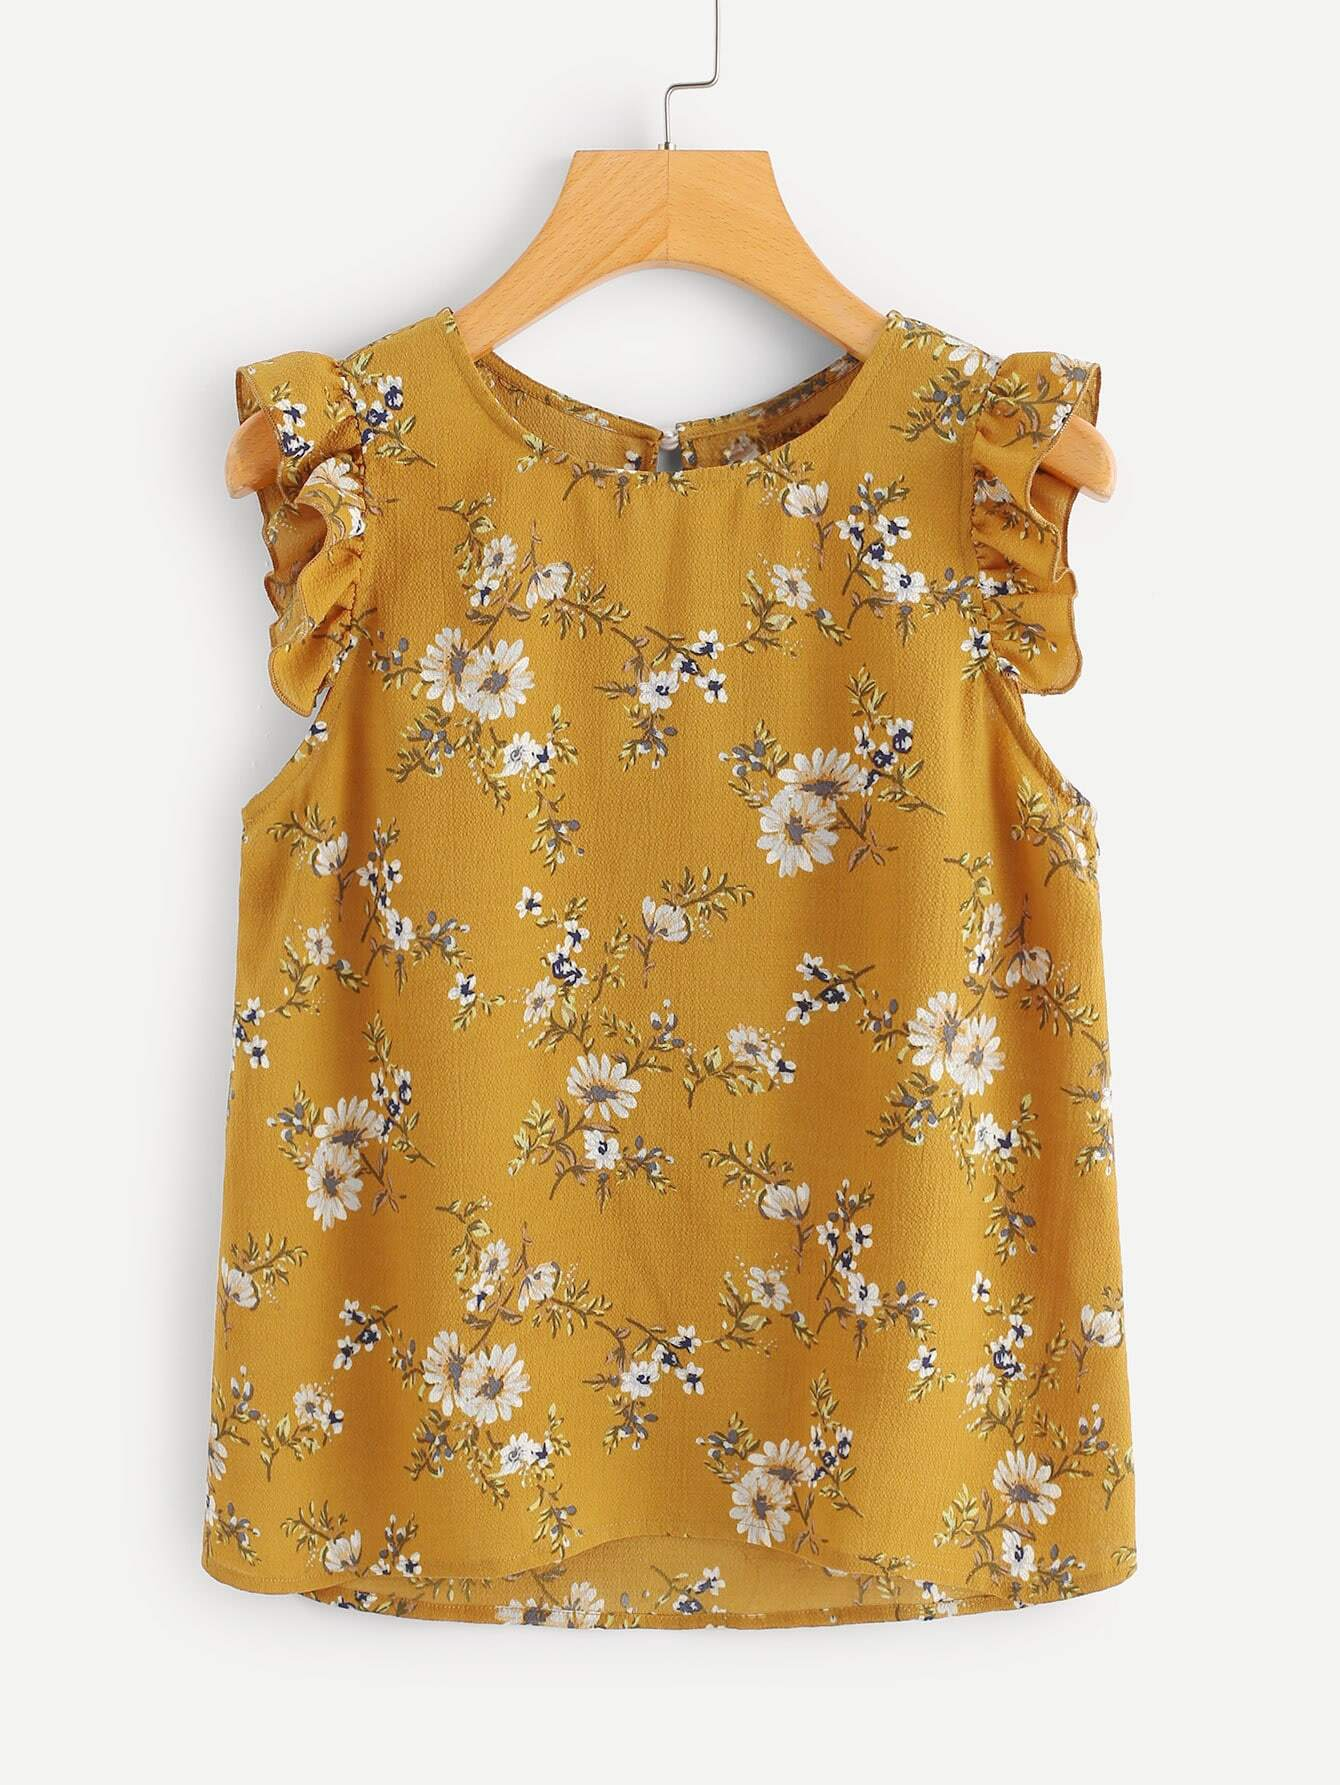 Frilled Armhole Button Closure Back Shell Top button closure back flower print top